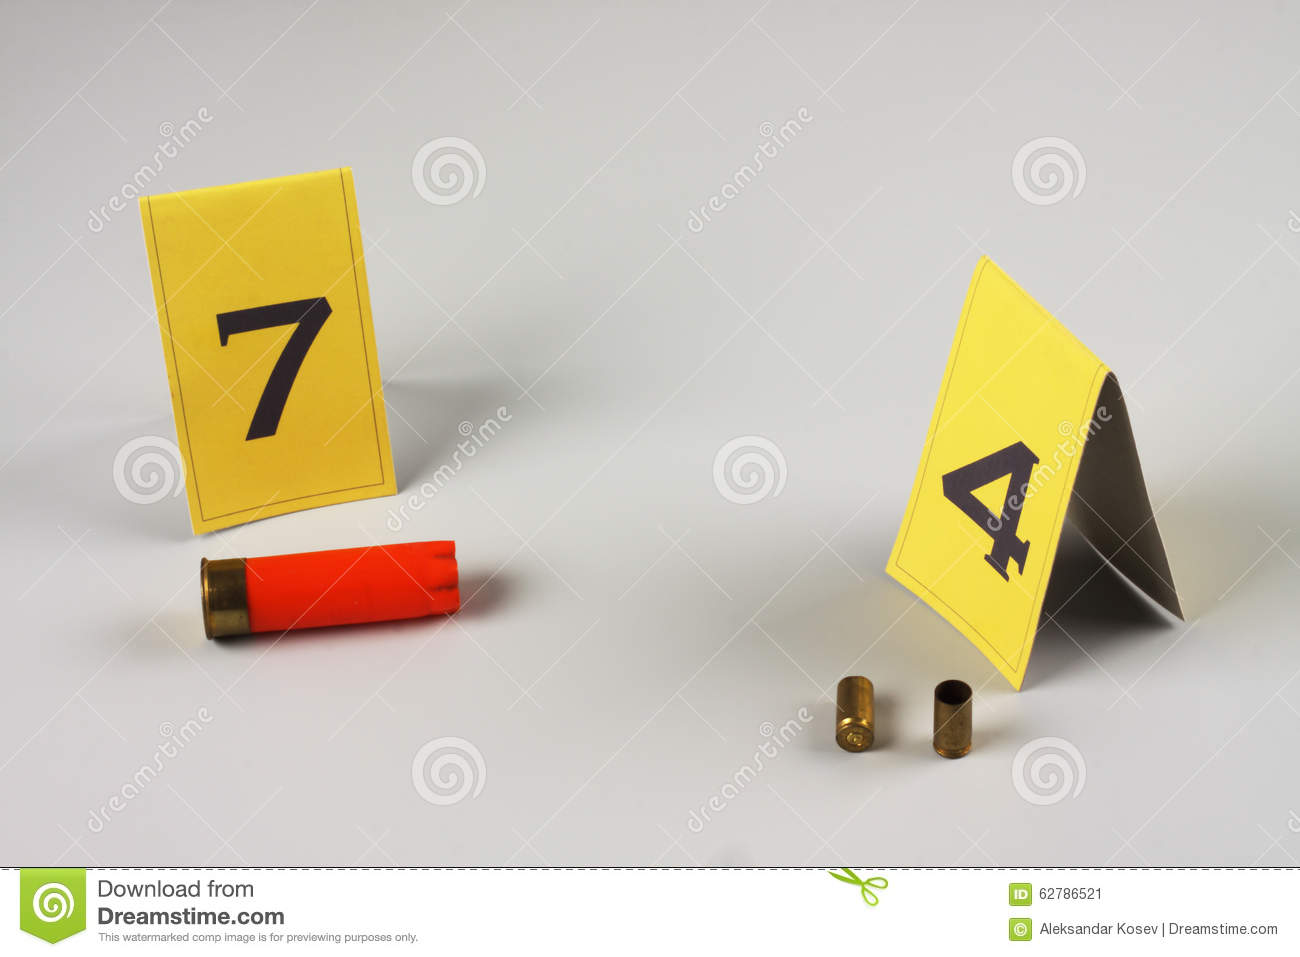 Collect Evidence Stock Image Of Marker Officer 62786521 Shotgun Shell Diagram Marked As On Grey